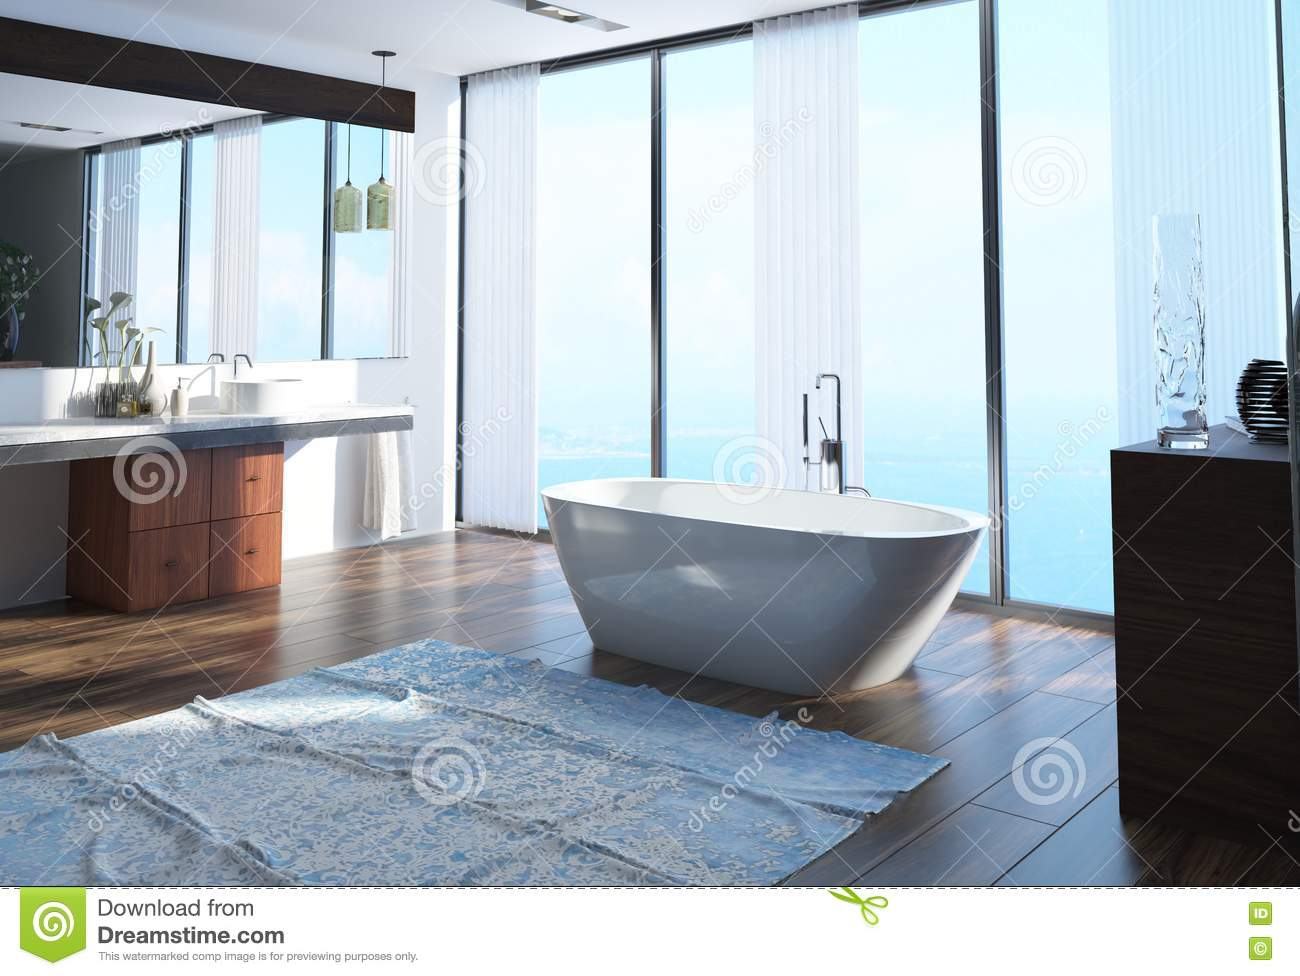 Modern waterfront bathroom interior decor with a freestanding boat shaped bathtub on a wooden parquet floor in front of floor to ceiling windows overlooking